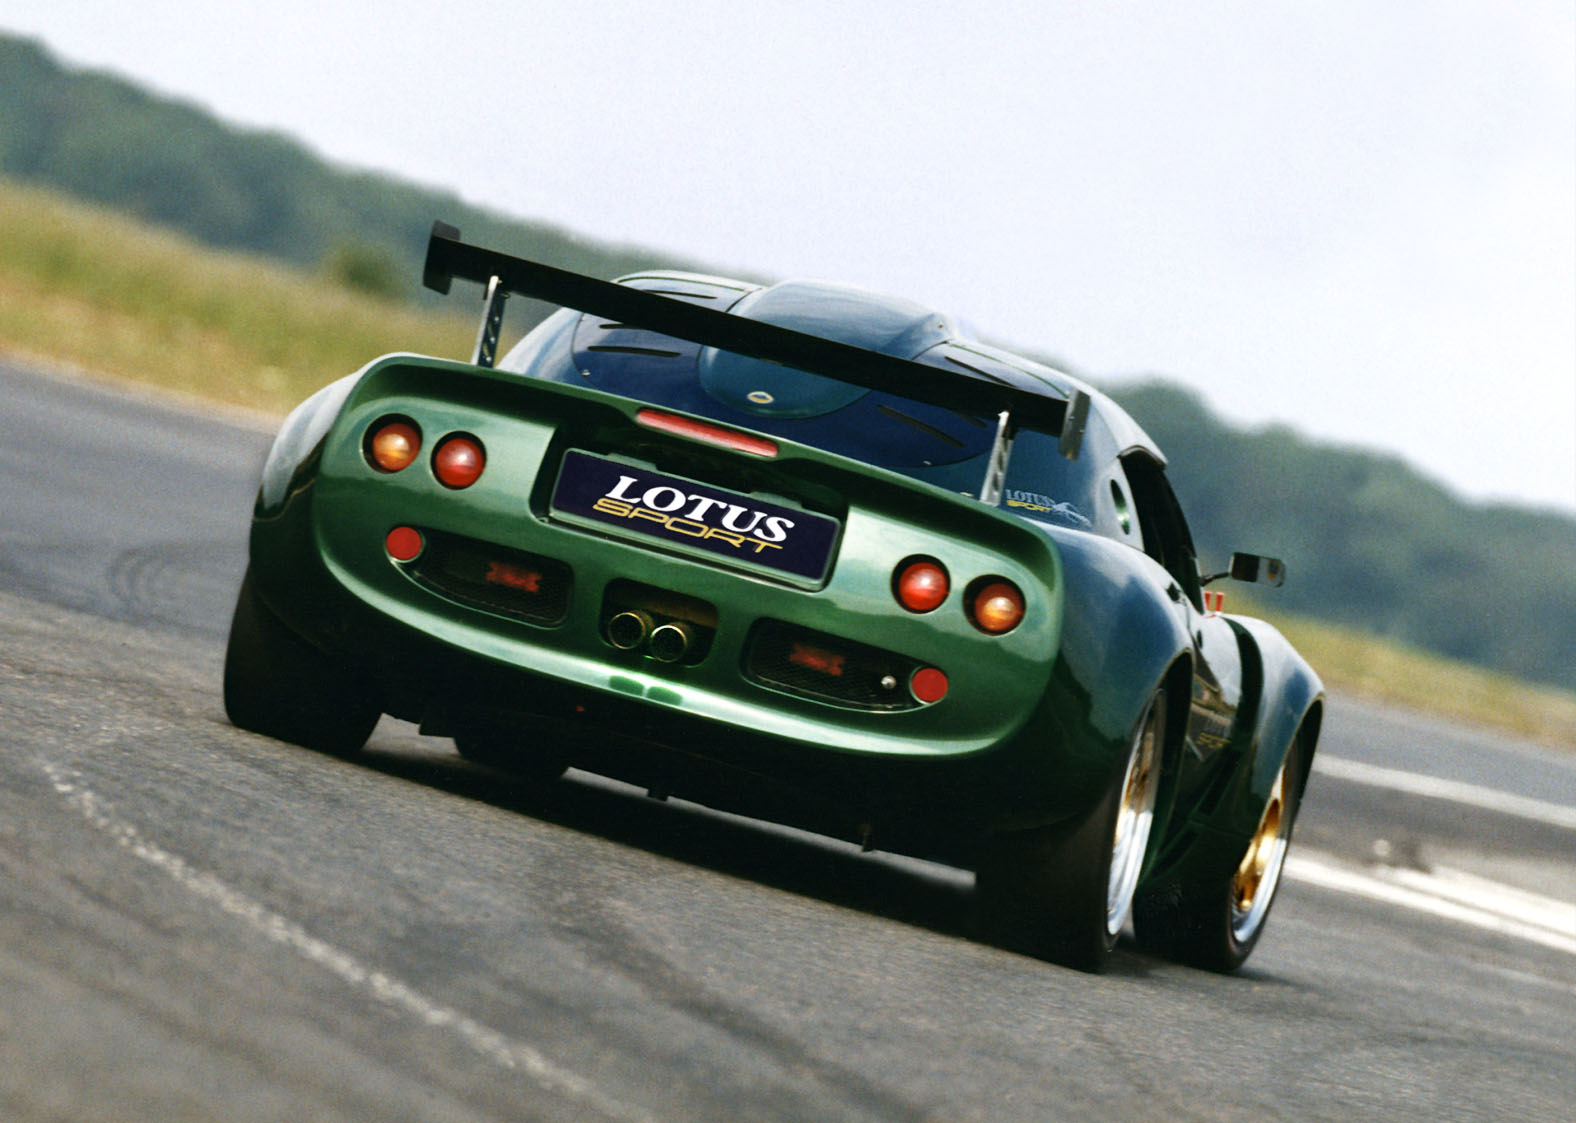 Lotus Elise S1 20th Anniversary 1995-2015 - Pagina 2 Ms2_big